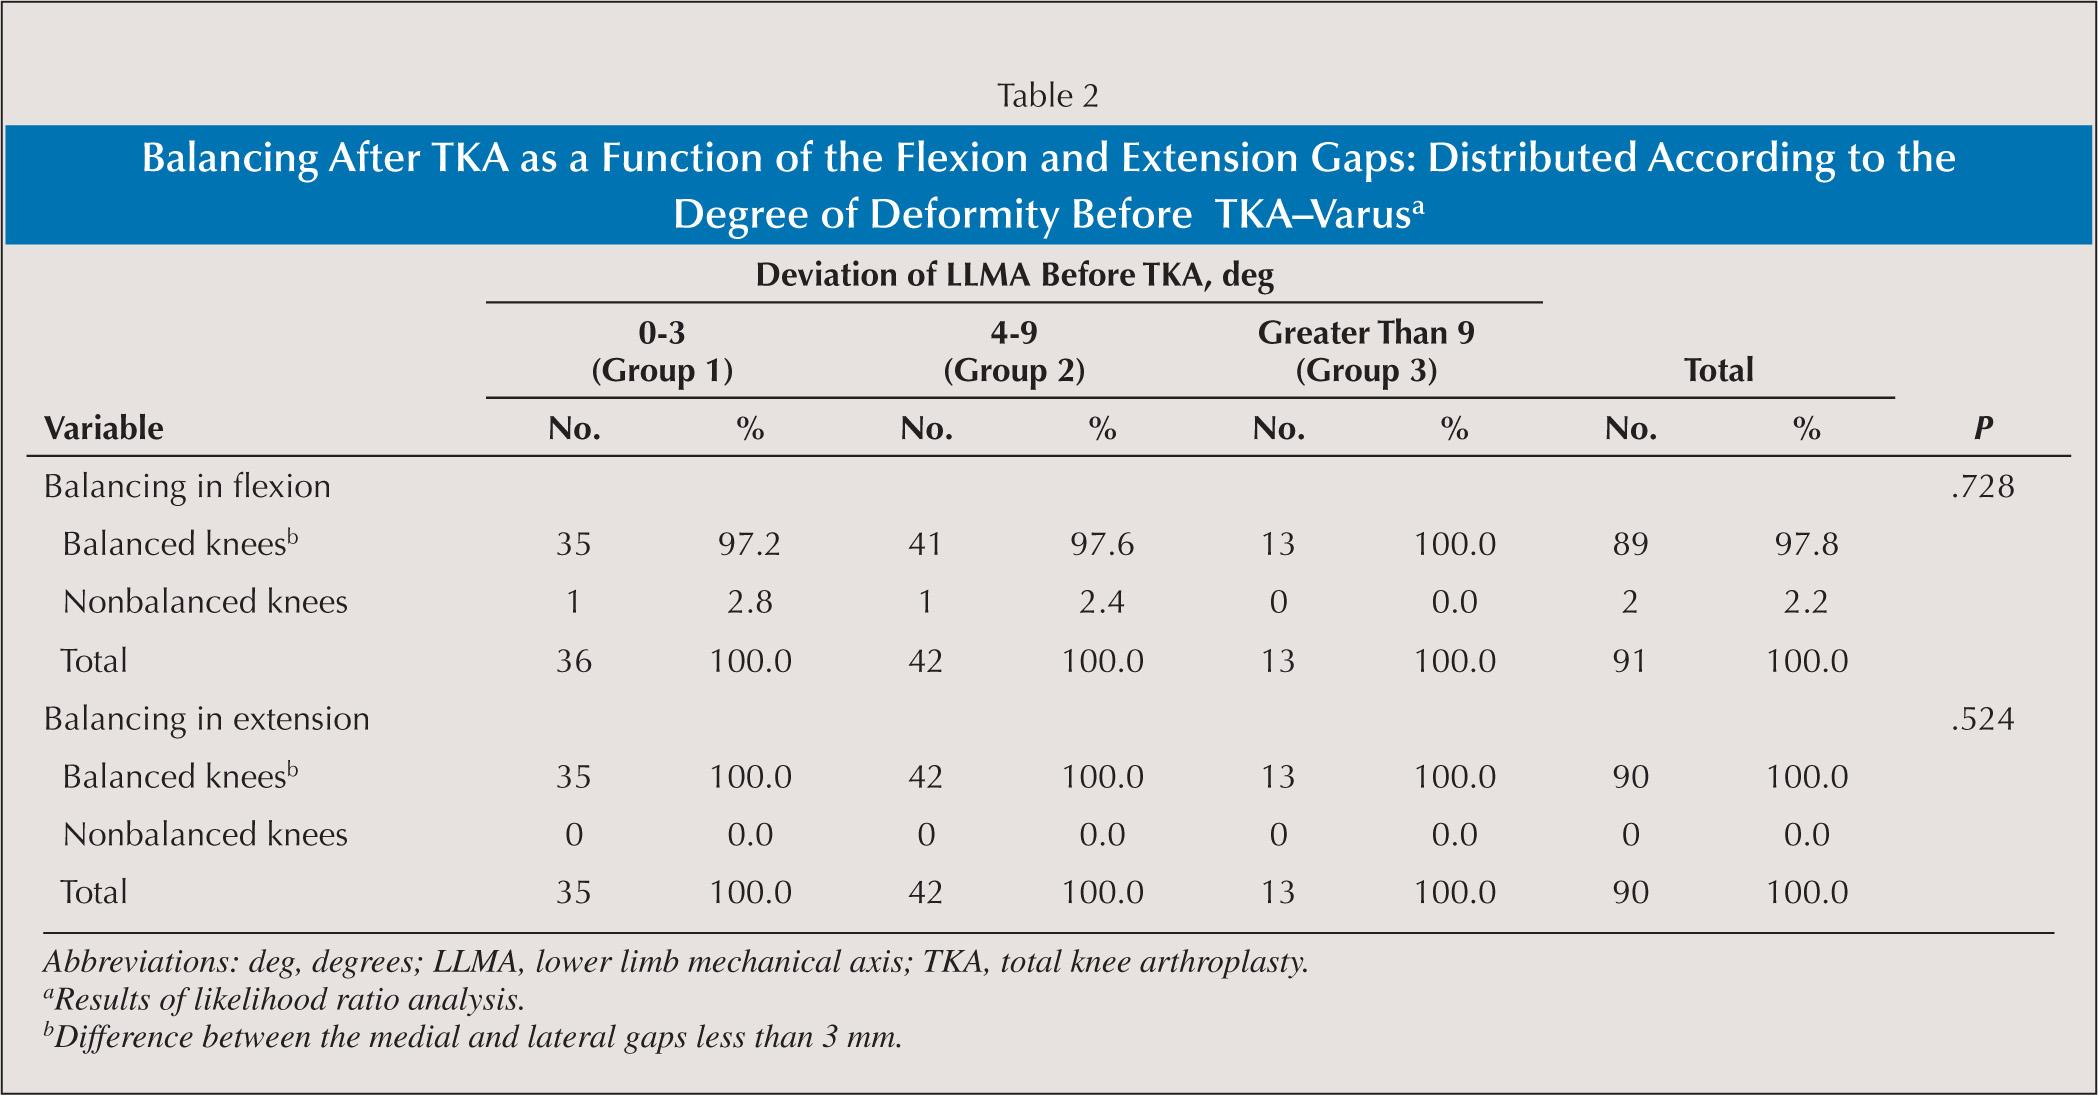 Balancing After TKA as a Function of the Flexion and Extension Gaps: Distributed According to the Degree of Deformity Before TKA–Varusa